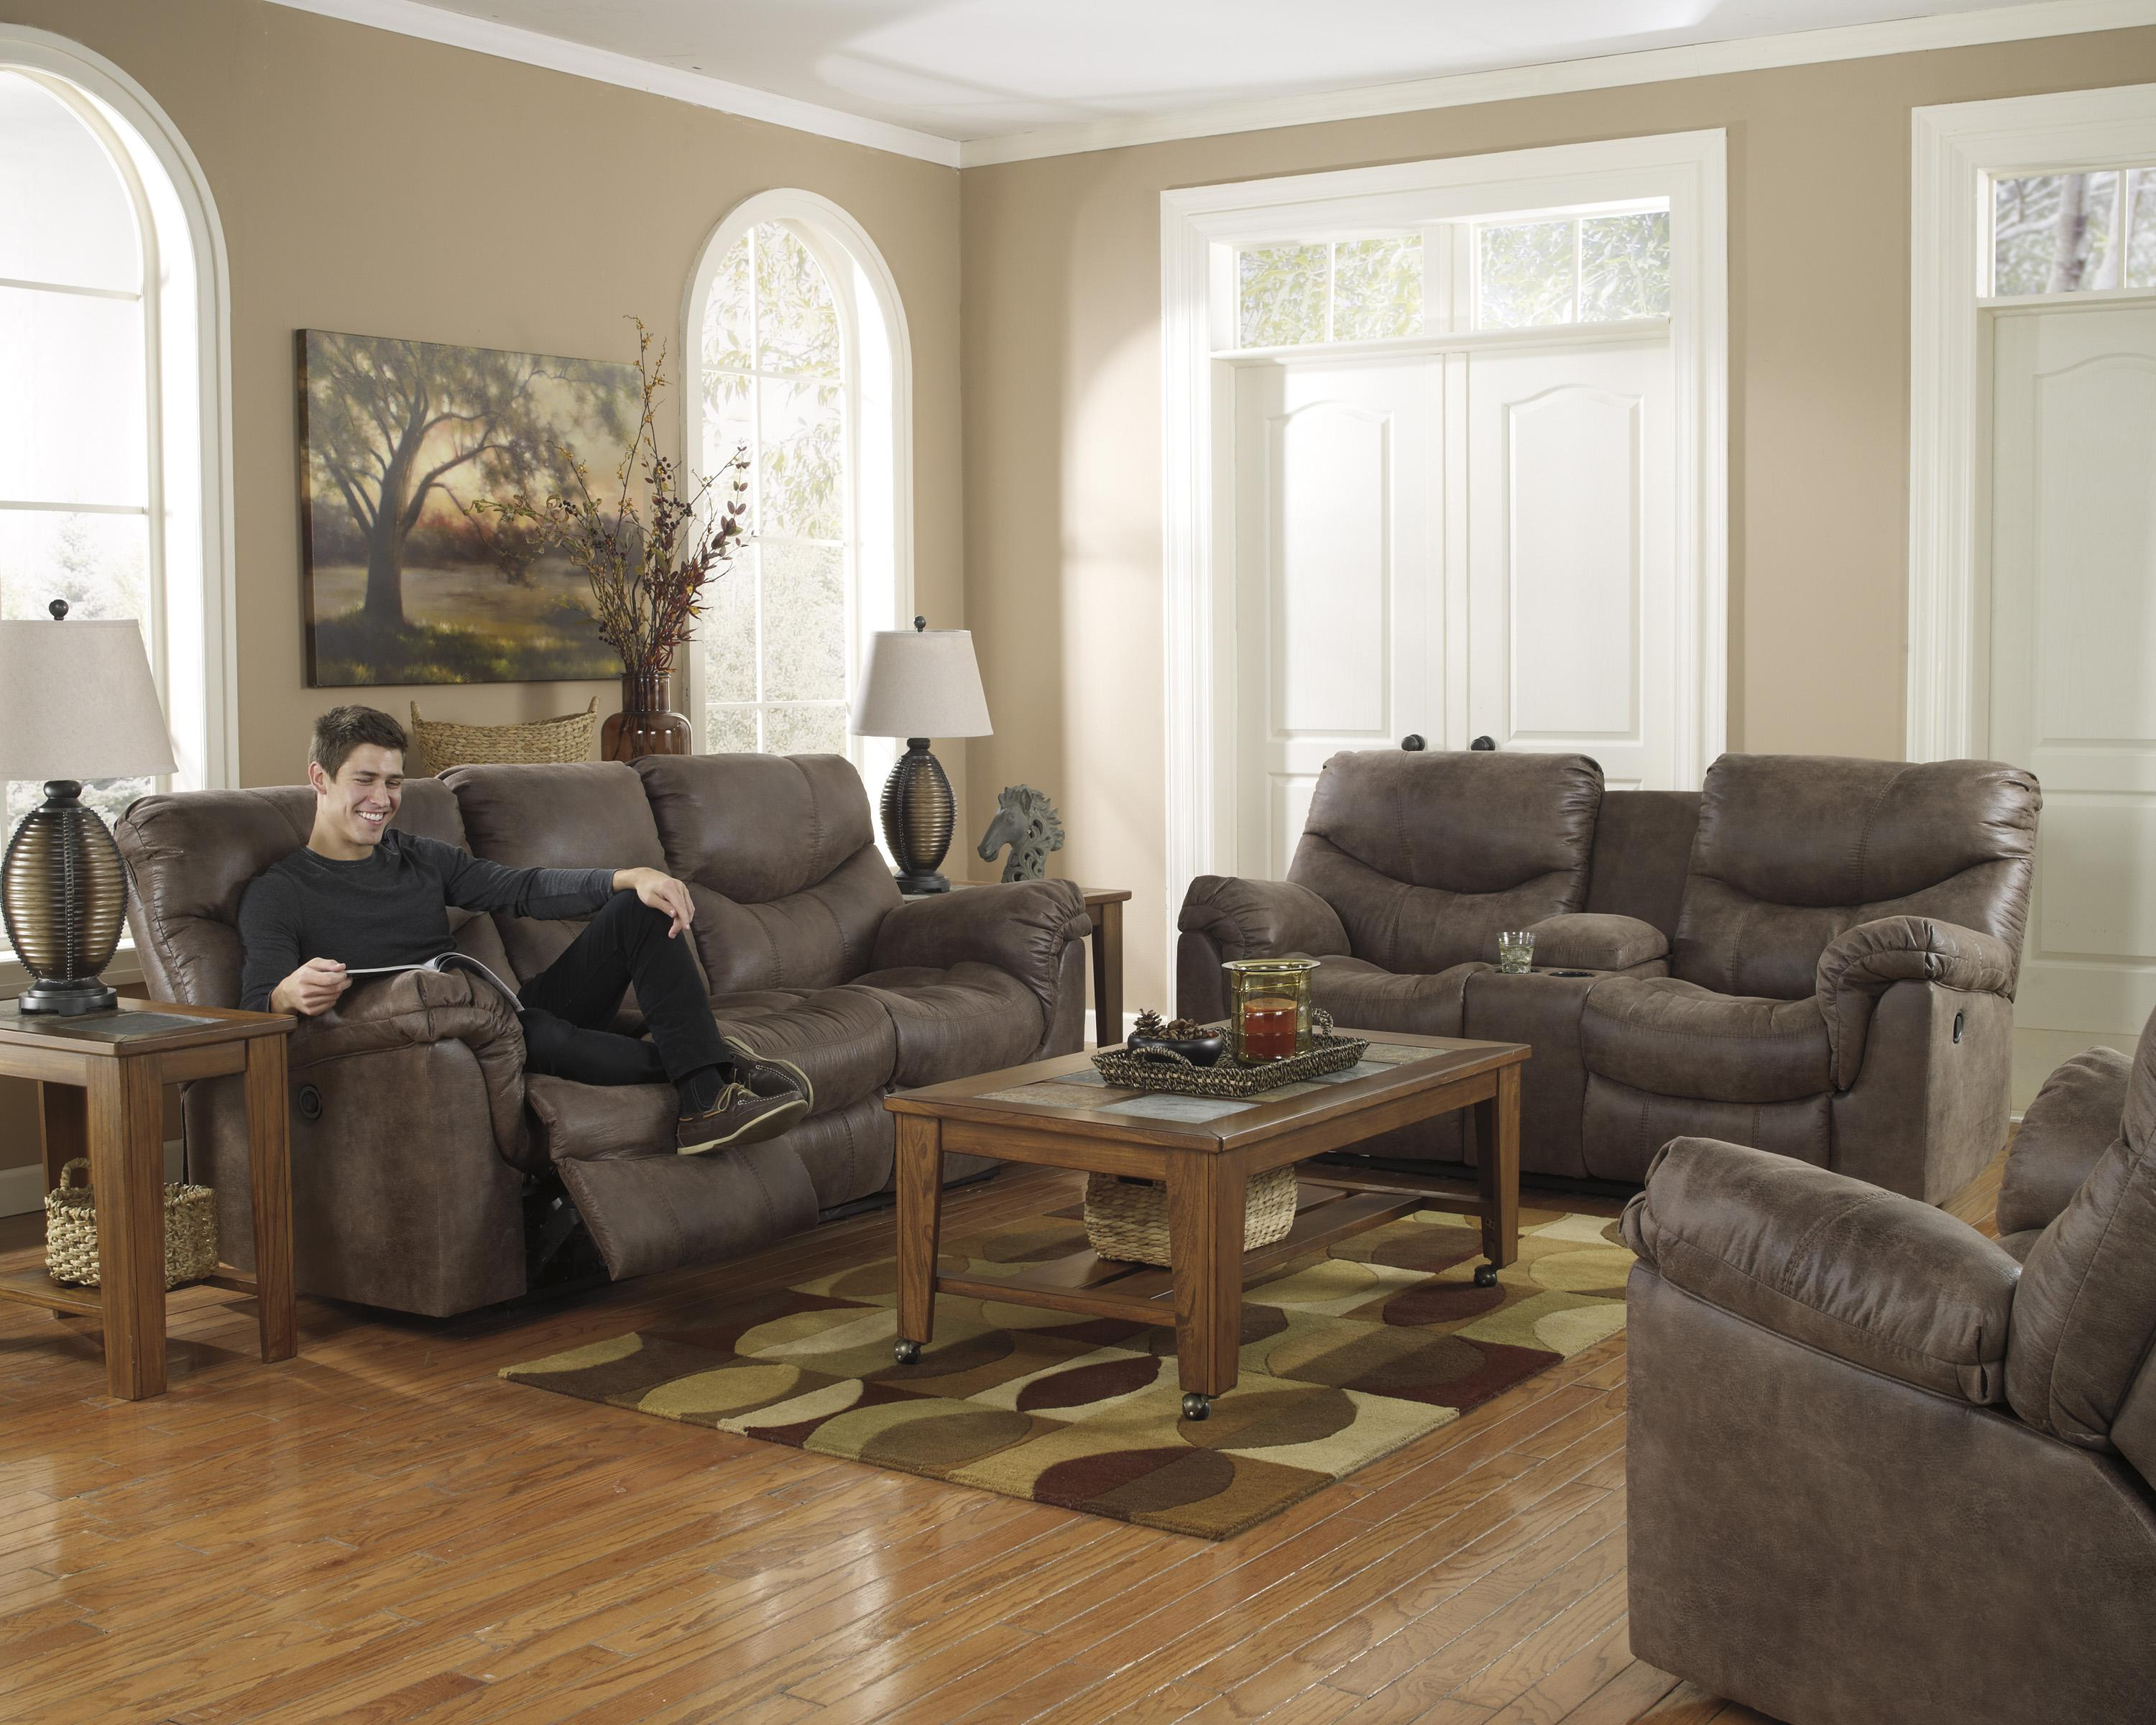 Alzena - Gunsmoke Reclining Living Room Group by Signature Design by Ashley at Catalog Outlet